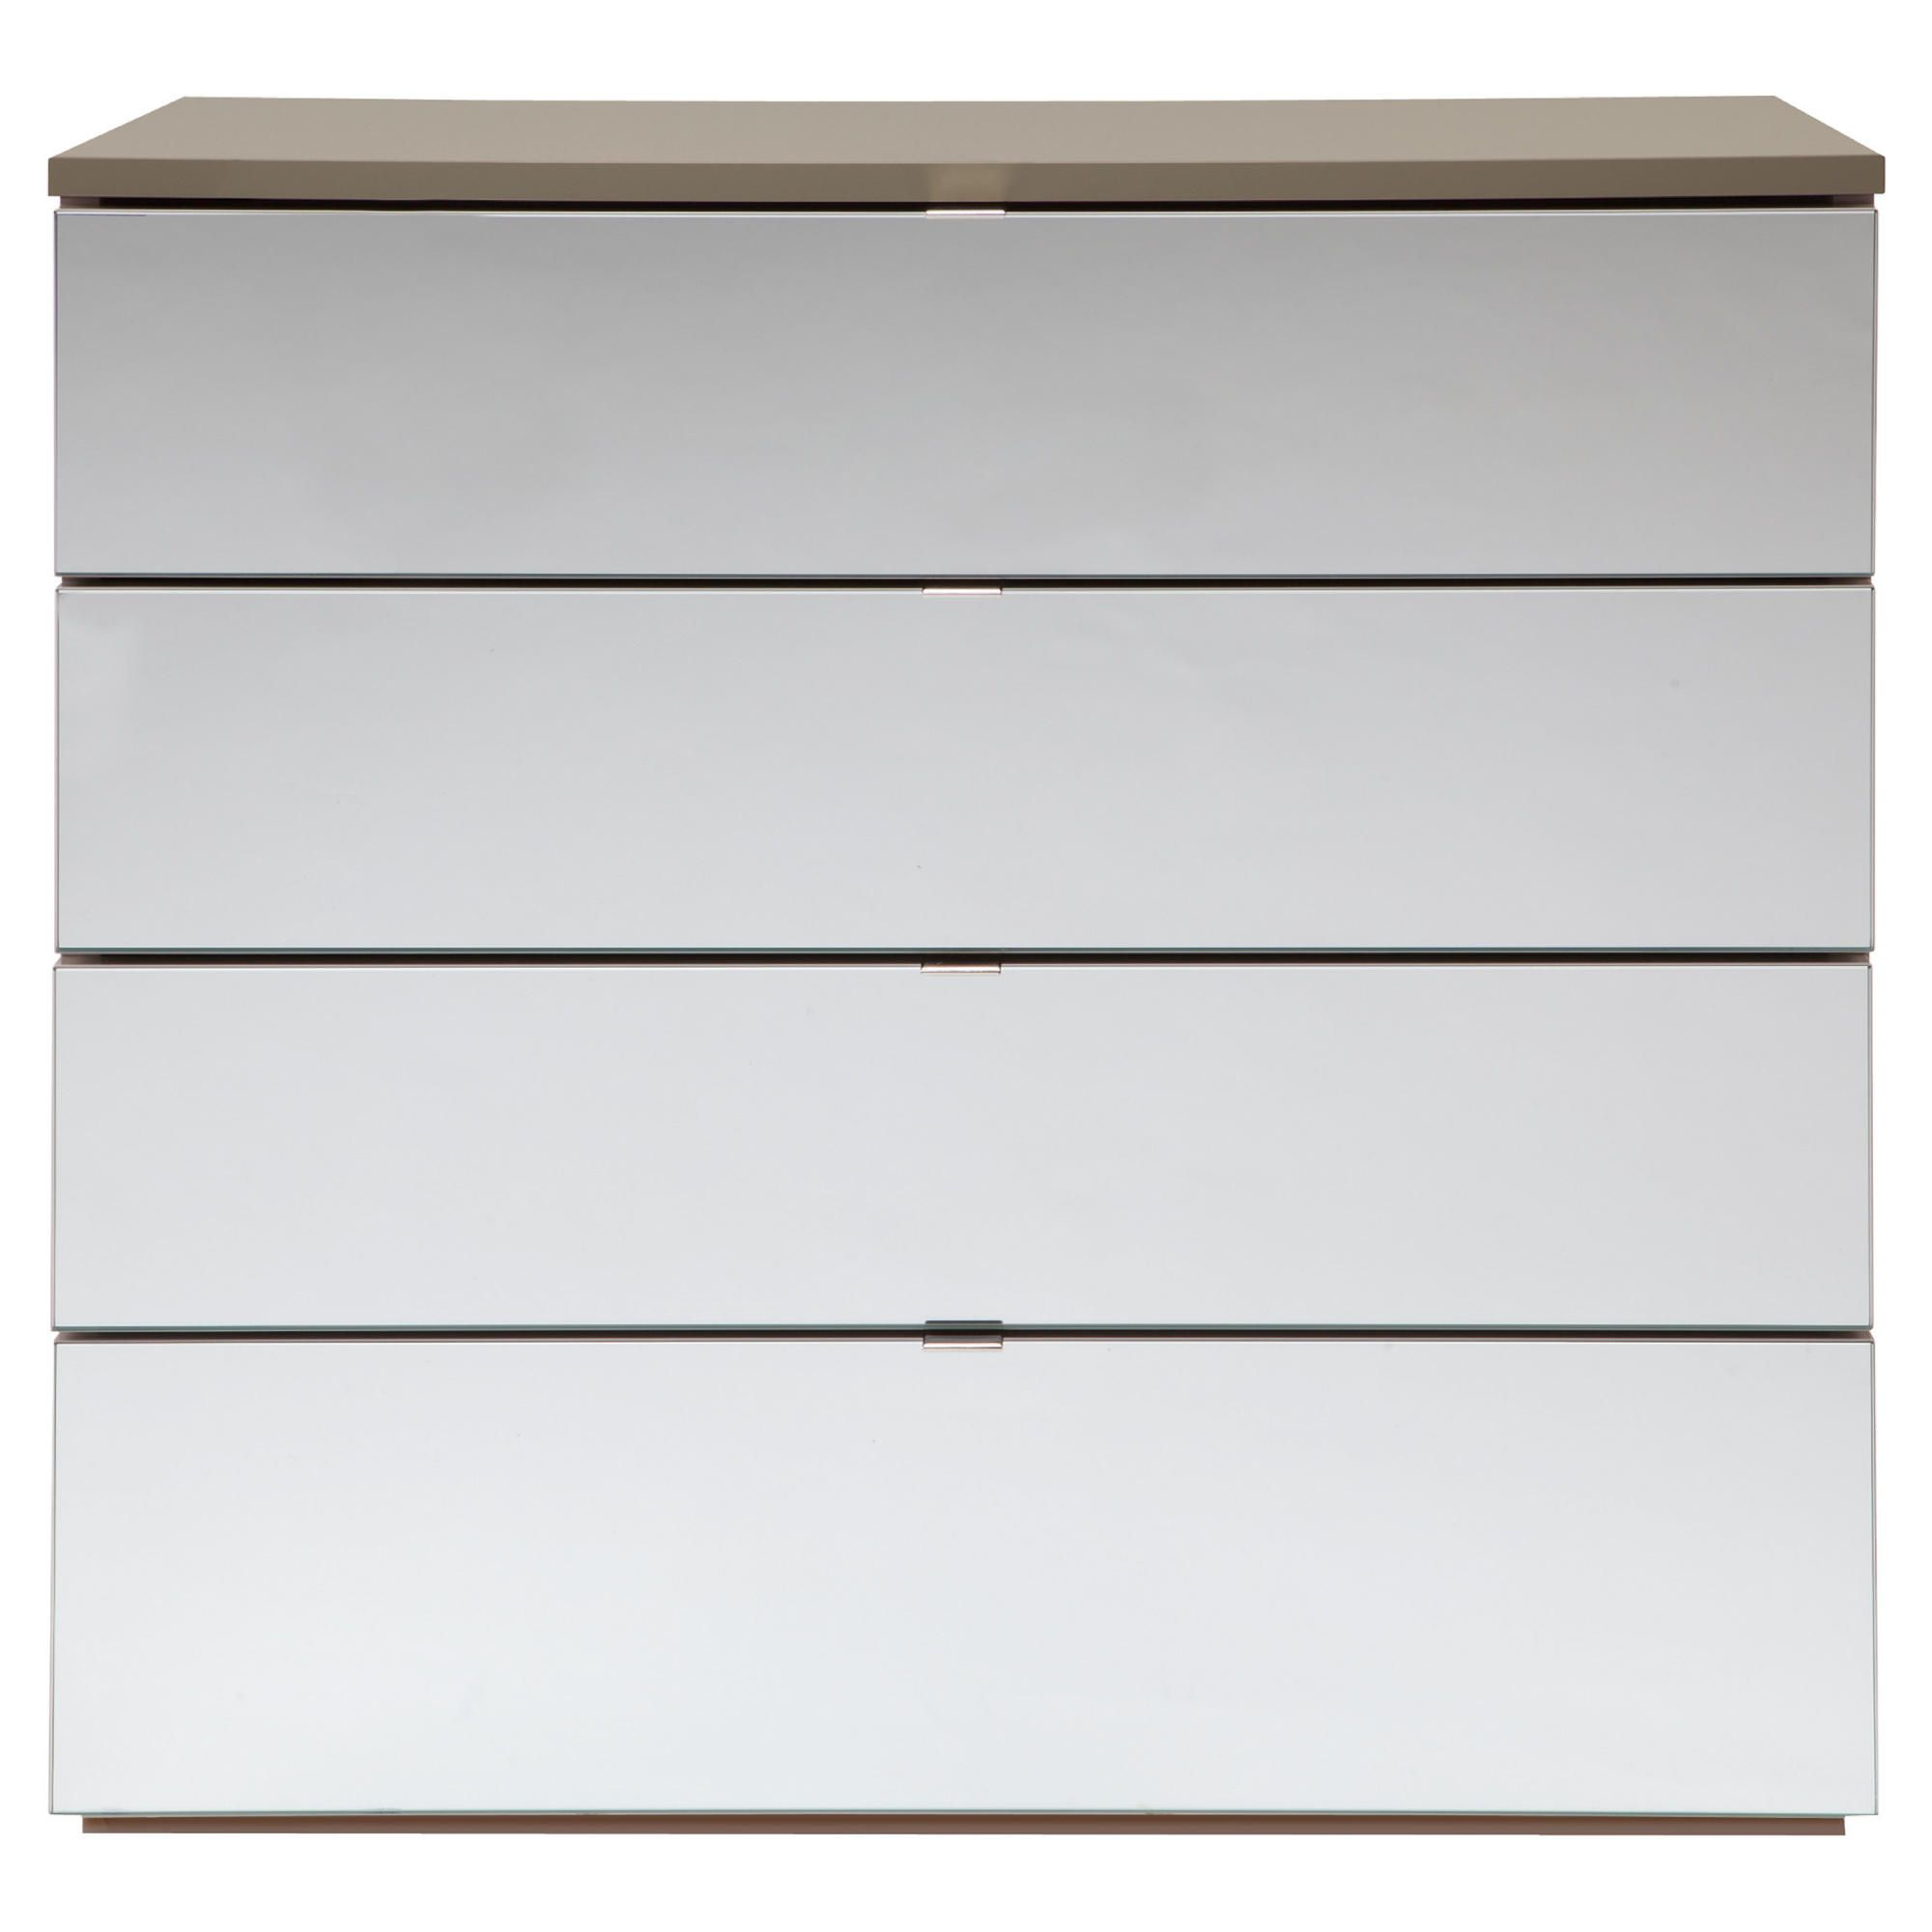 Palermo 4 Drawer Chest Taupe Mirrored at Tesco Direct